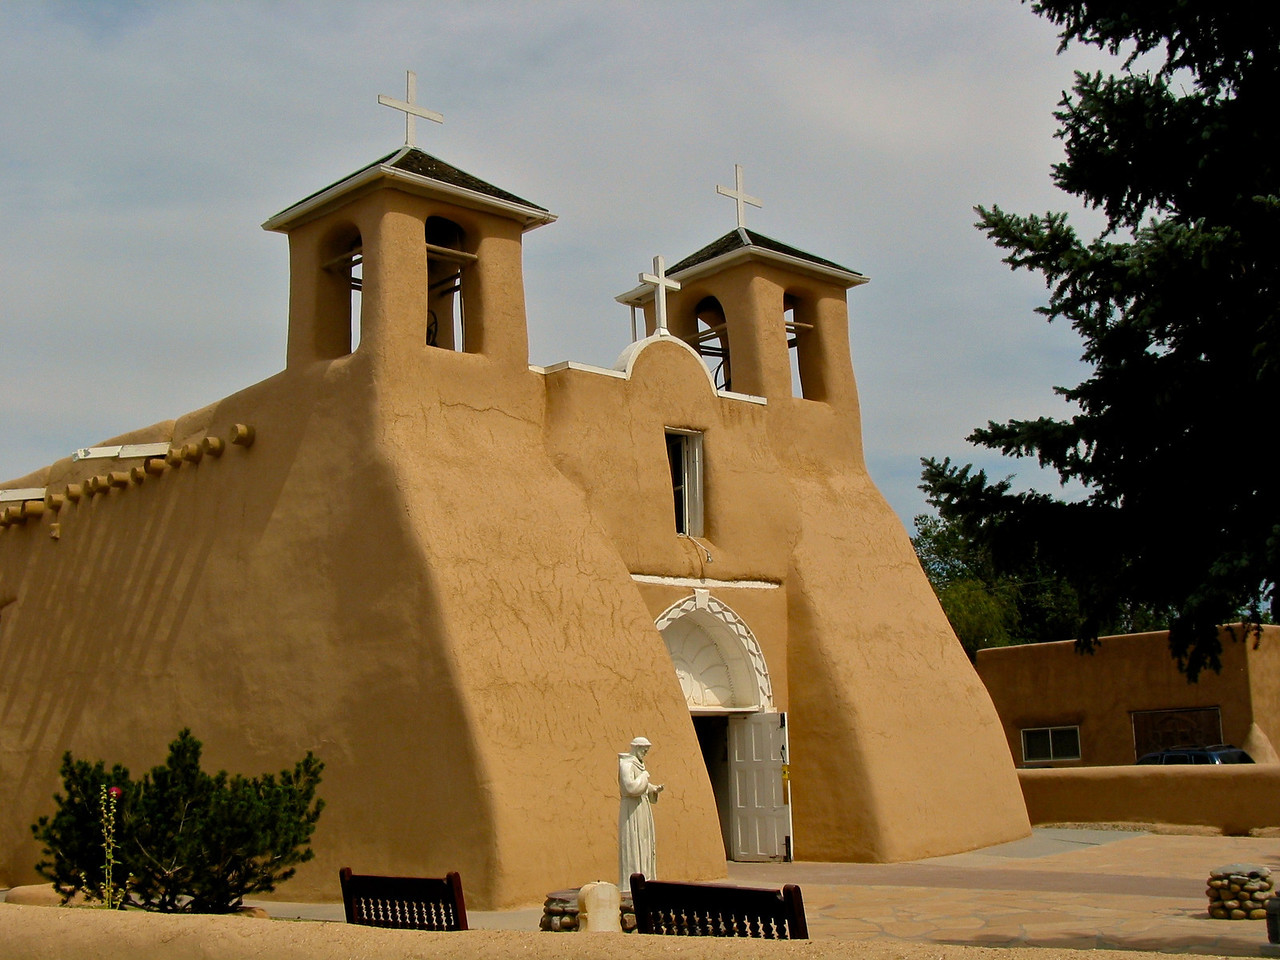 San Francisco de Asis Mission Church is a church built between 1772 and 1816. It is located on the plaza in Ranchos de Taos, itself a historic district named Ranchos de Taos Plaza, about four miles southwest of the town of Taos, New Mexico.